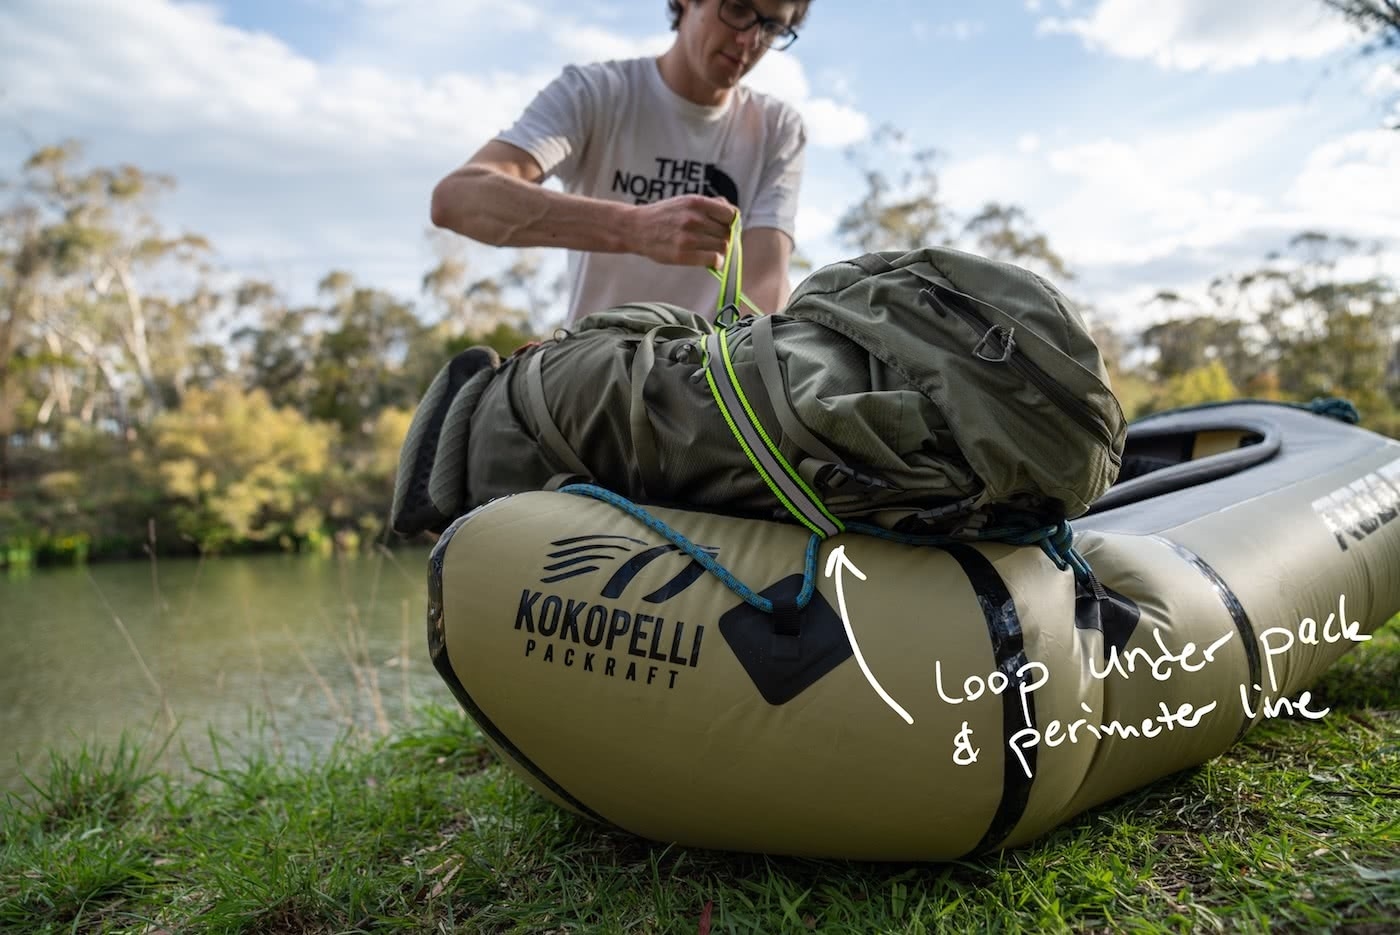 5 Ways To Pimp Your Packraft Mitchell Scanlan Bloor packraft, loop under pack